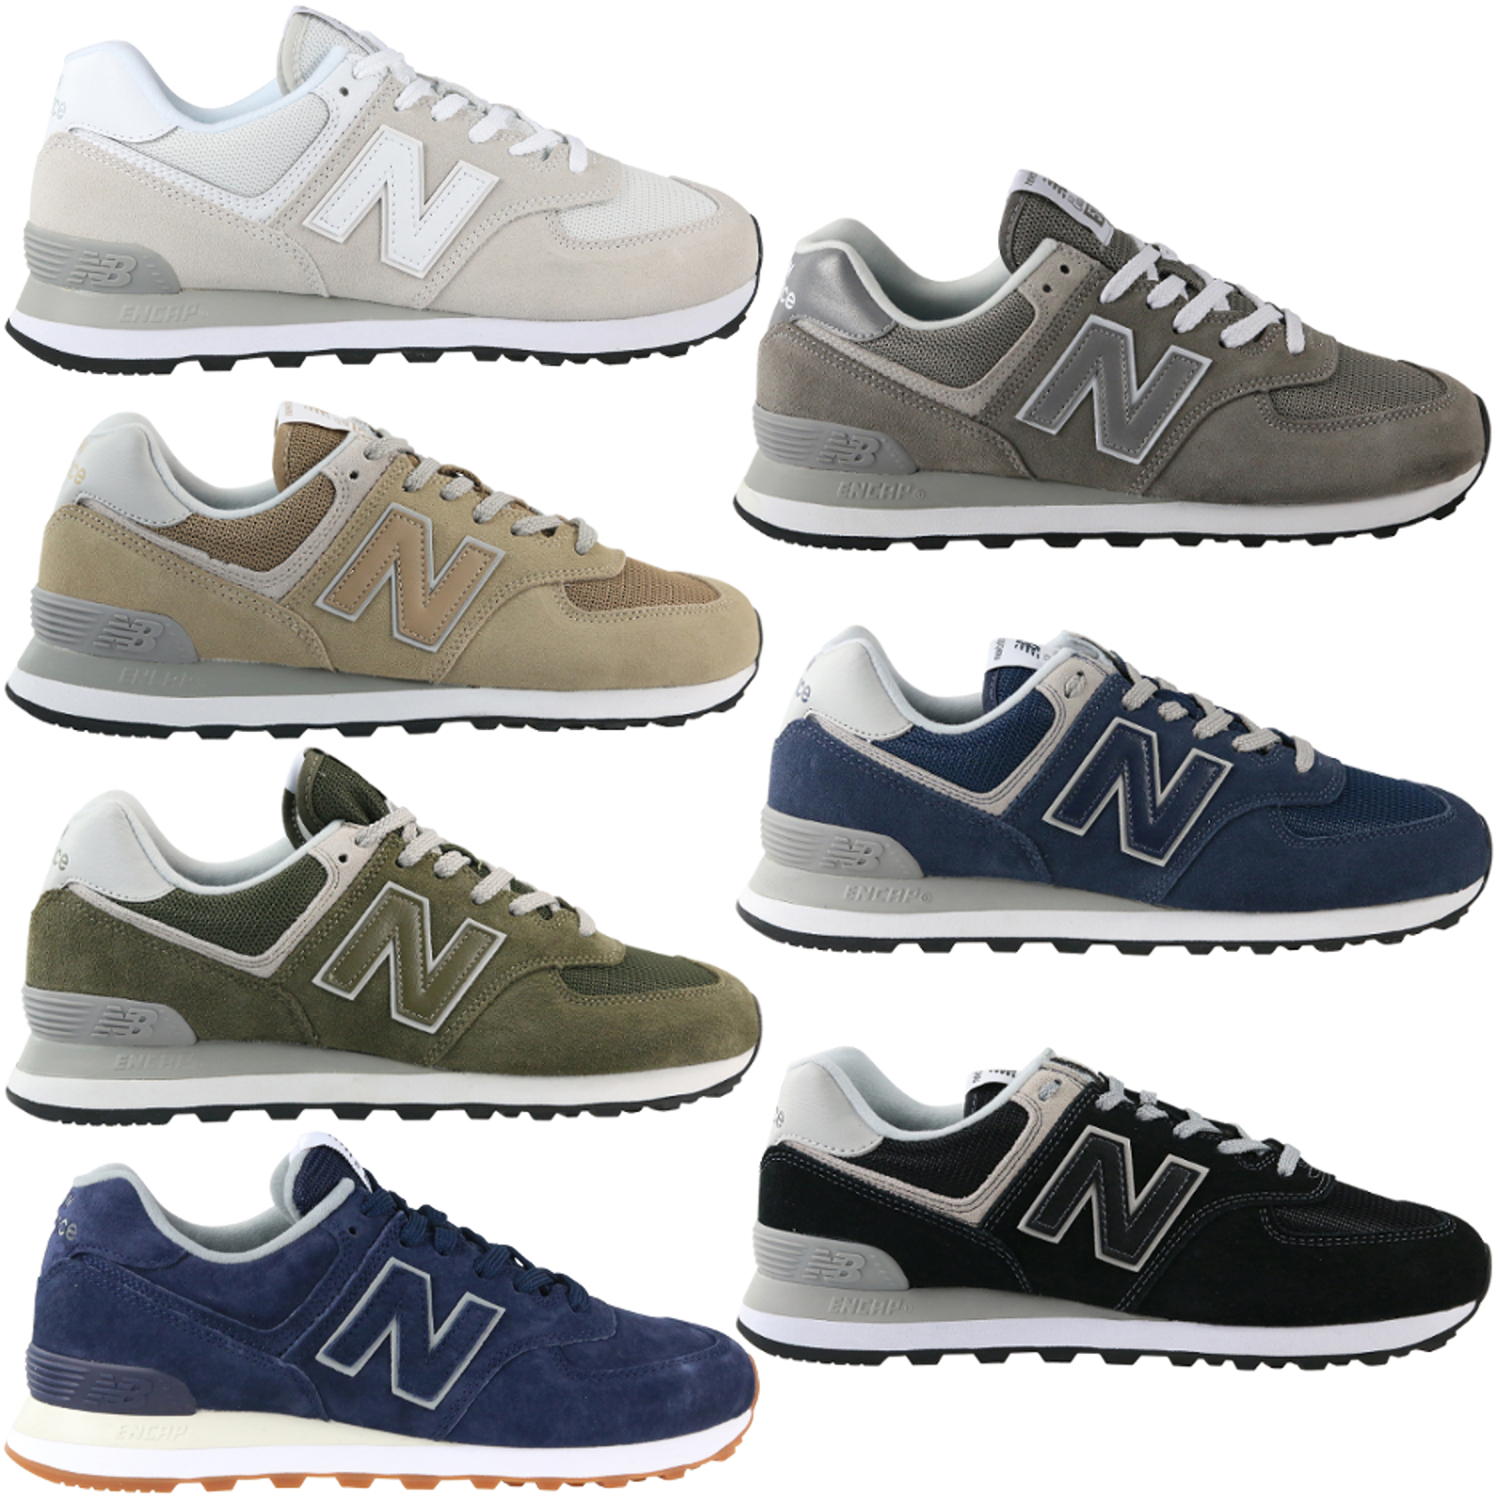 Details about NEW Balance 574 it Sea Escape Sneaker Shoes Mens ml574- show  original title